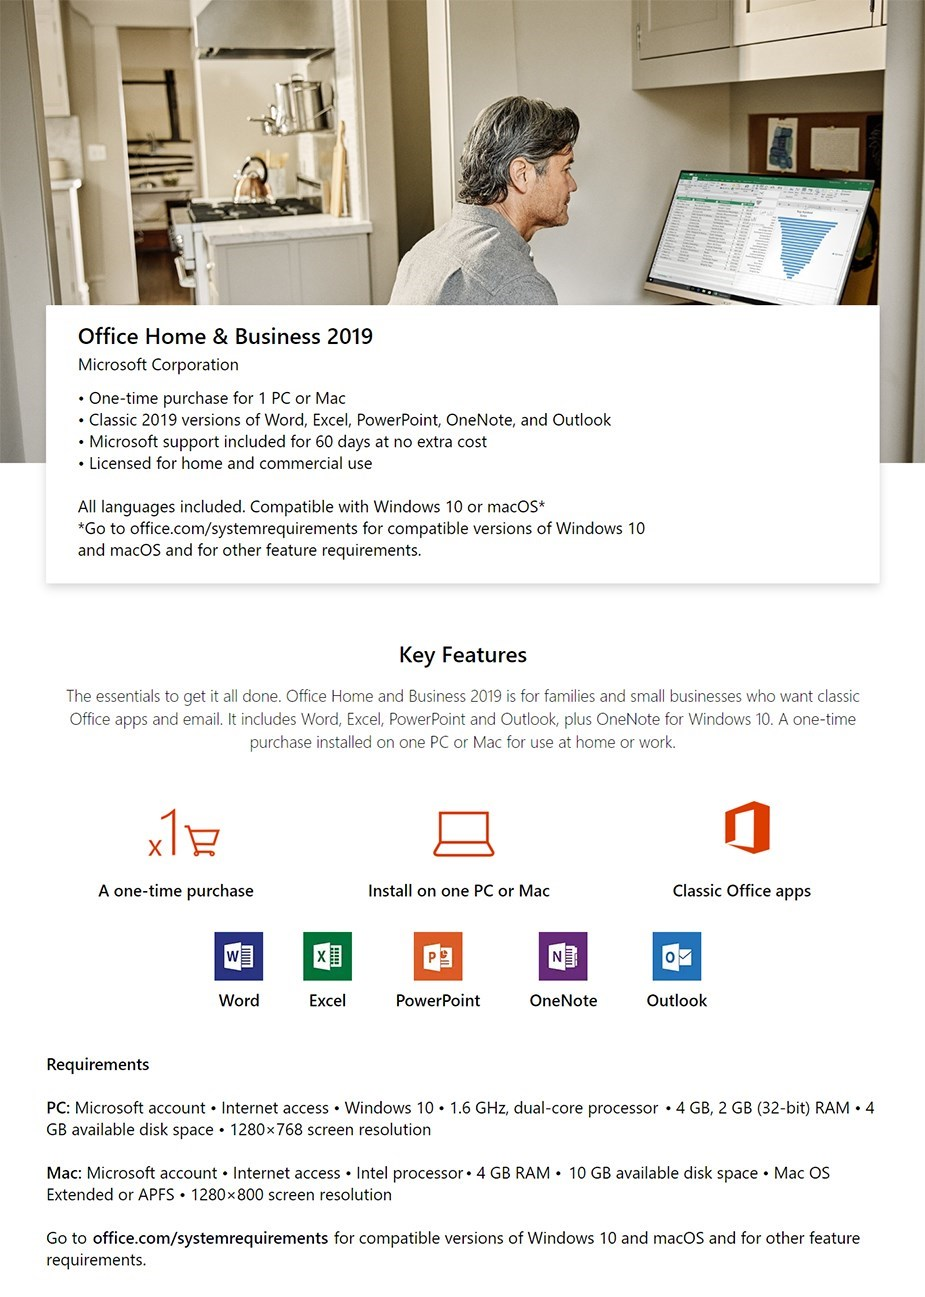 Microsoft Office 2019 Home and Business for Windows or Mac - Medialess Retail - Overview 1